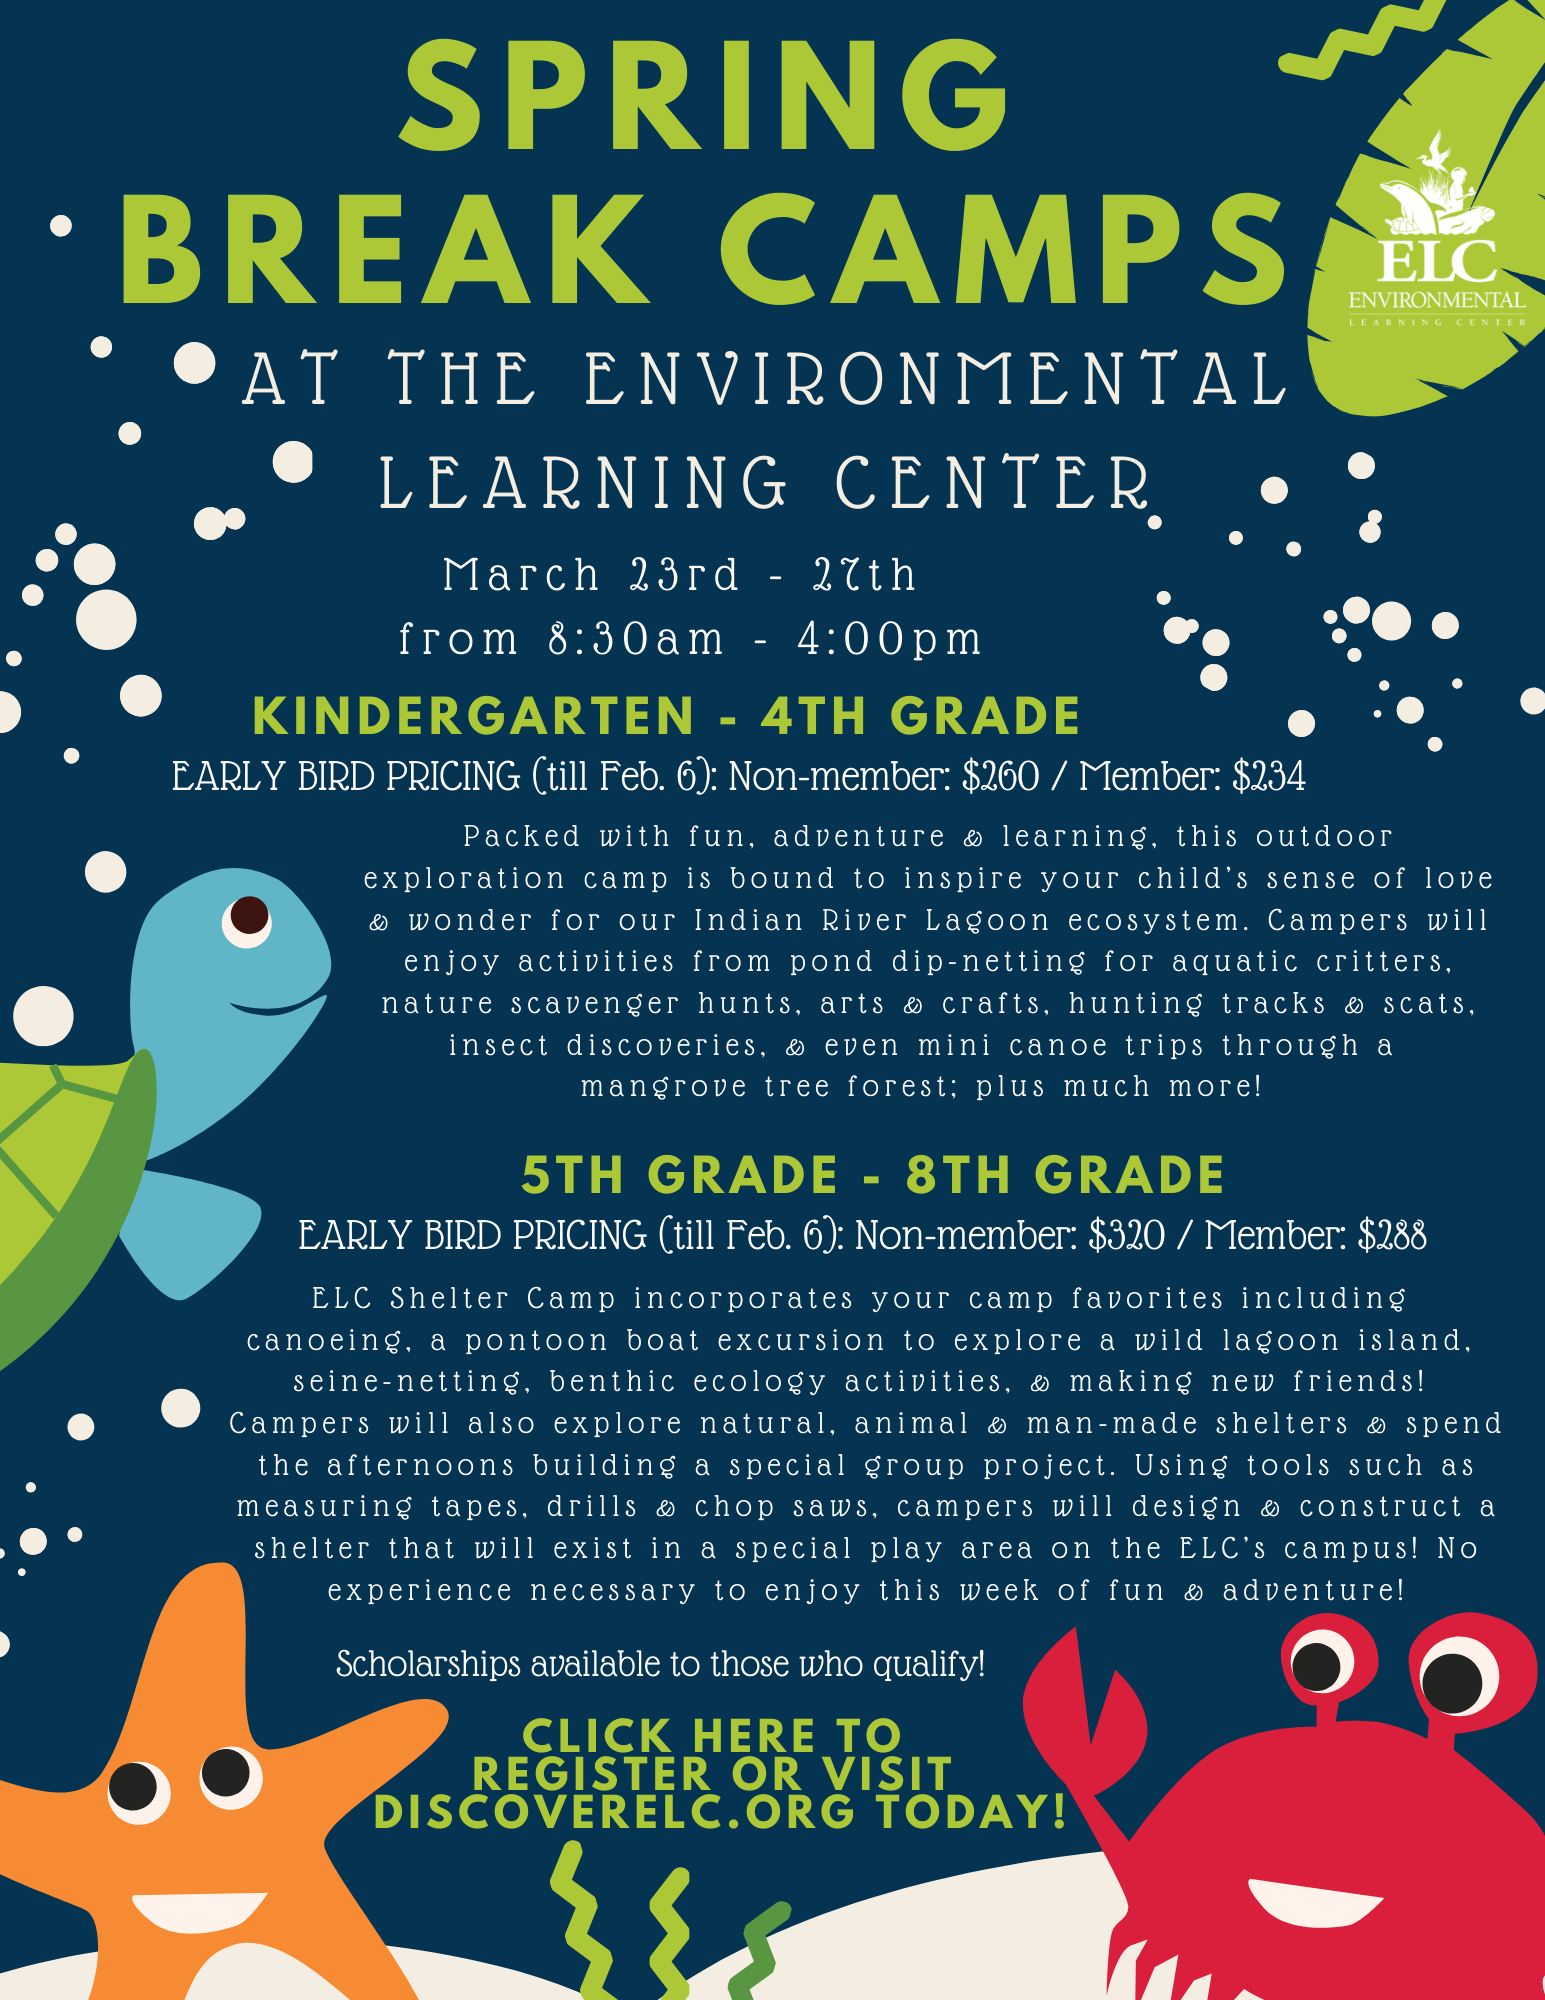 Spring Break Camp at the Environmental Learning Center